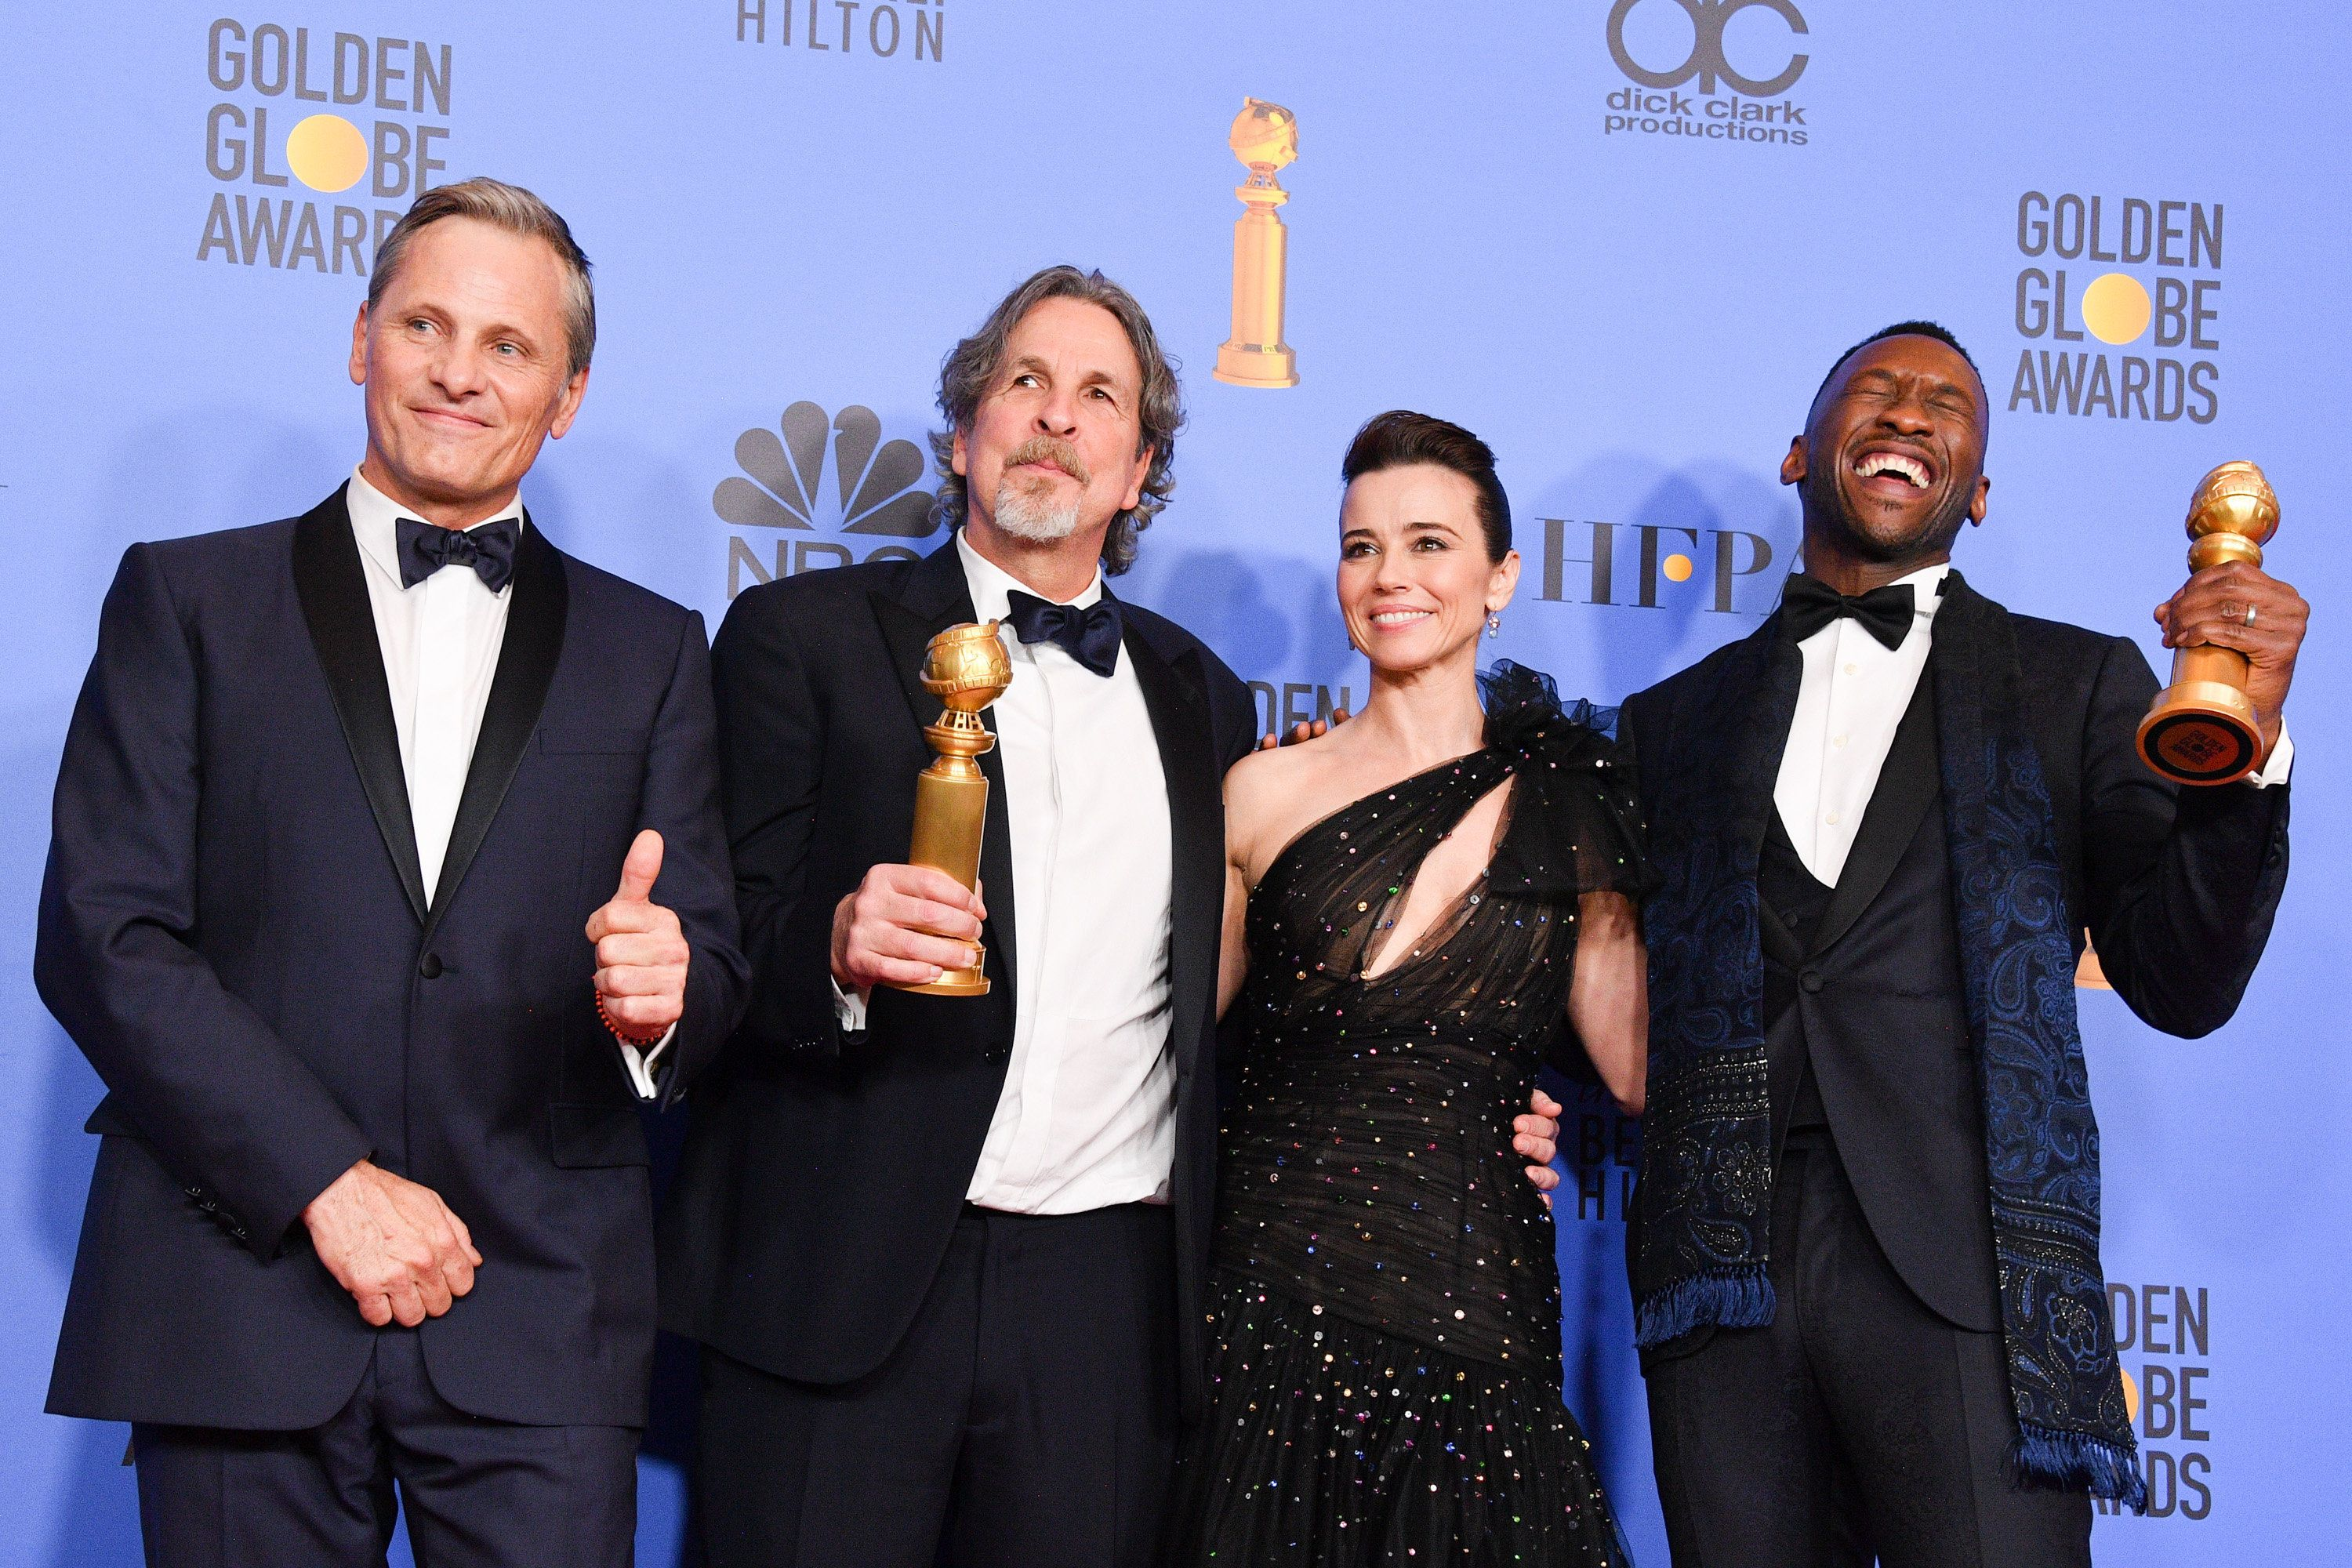 'Green Book' Criticism Is About Holding Hollywood Accountable, Not